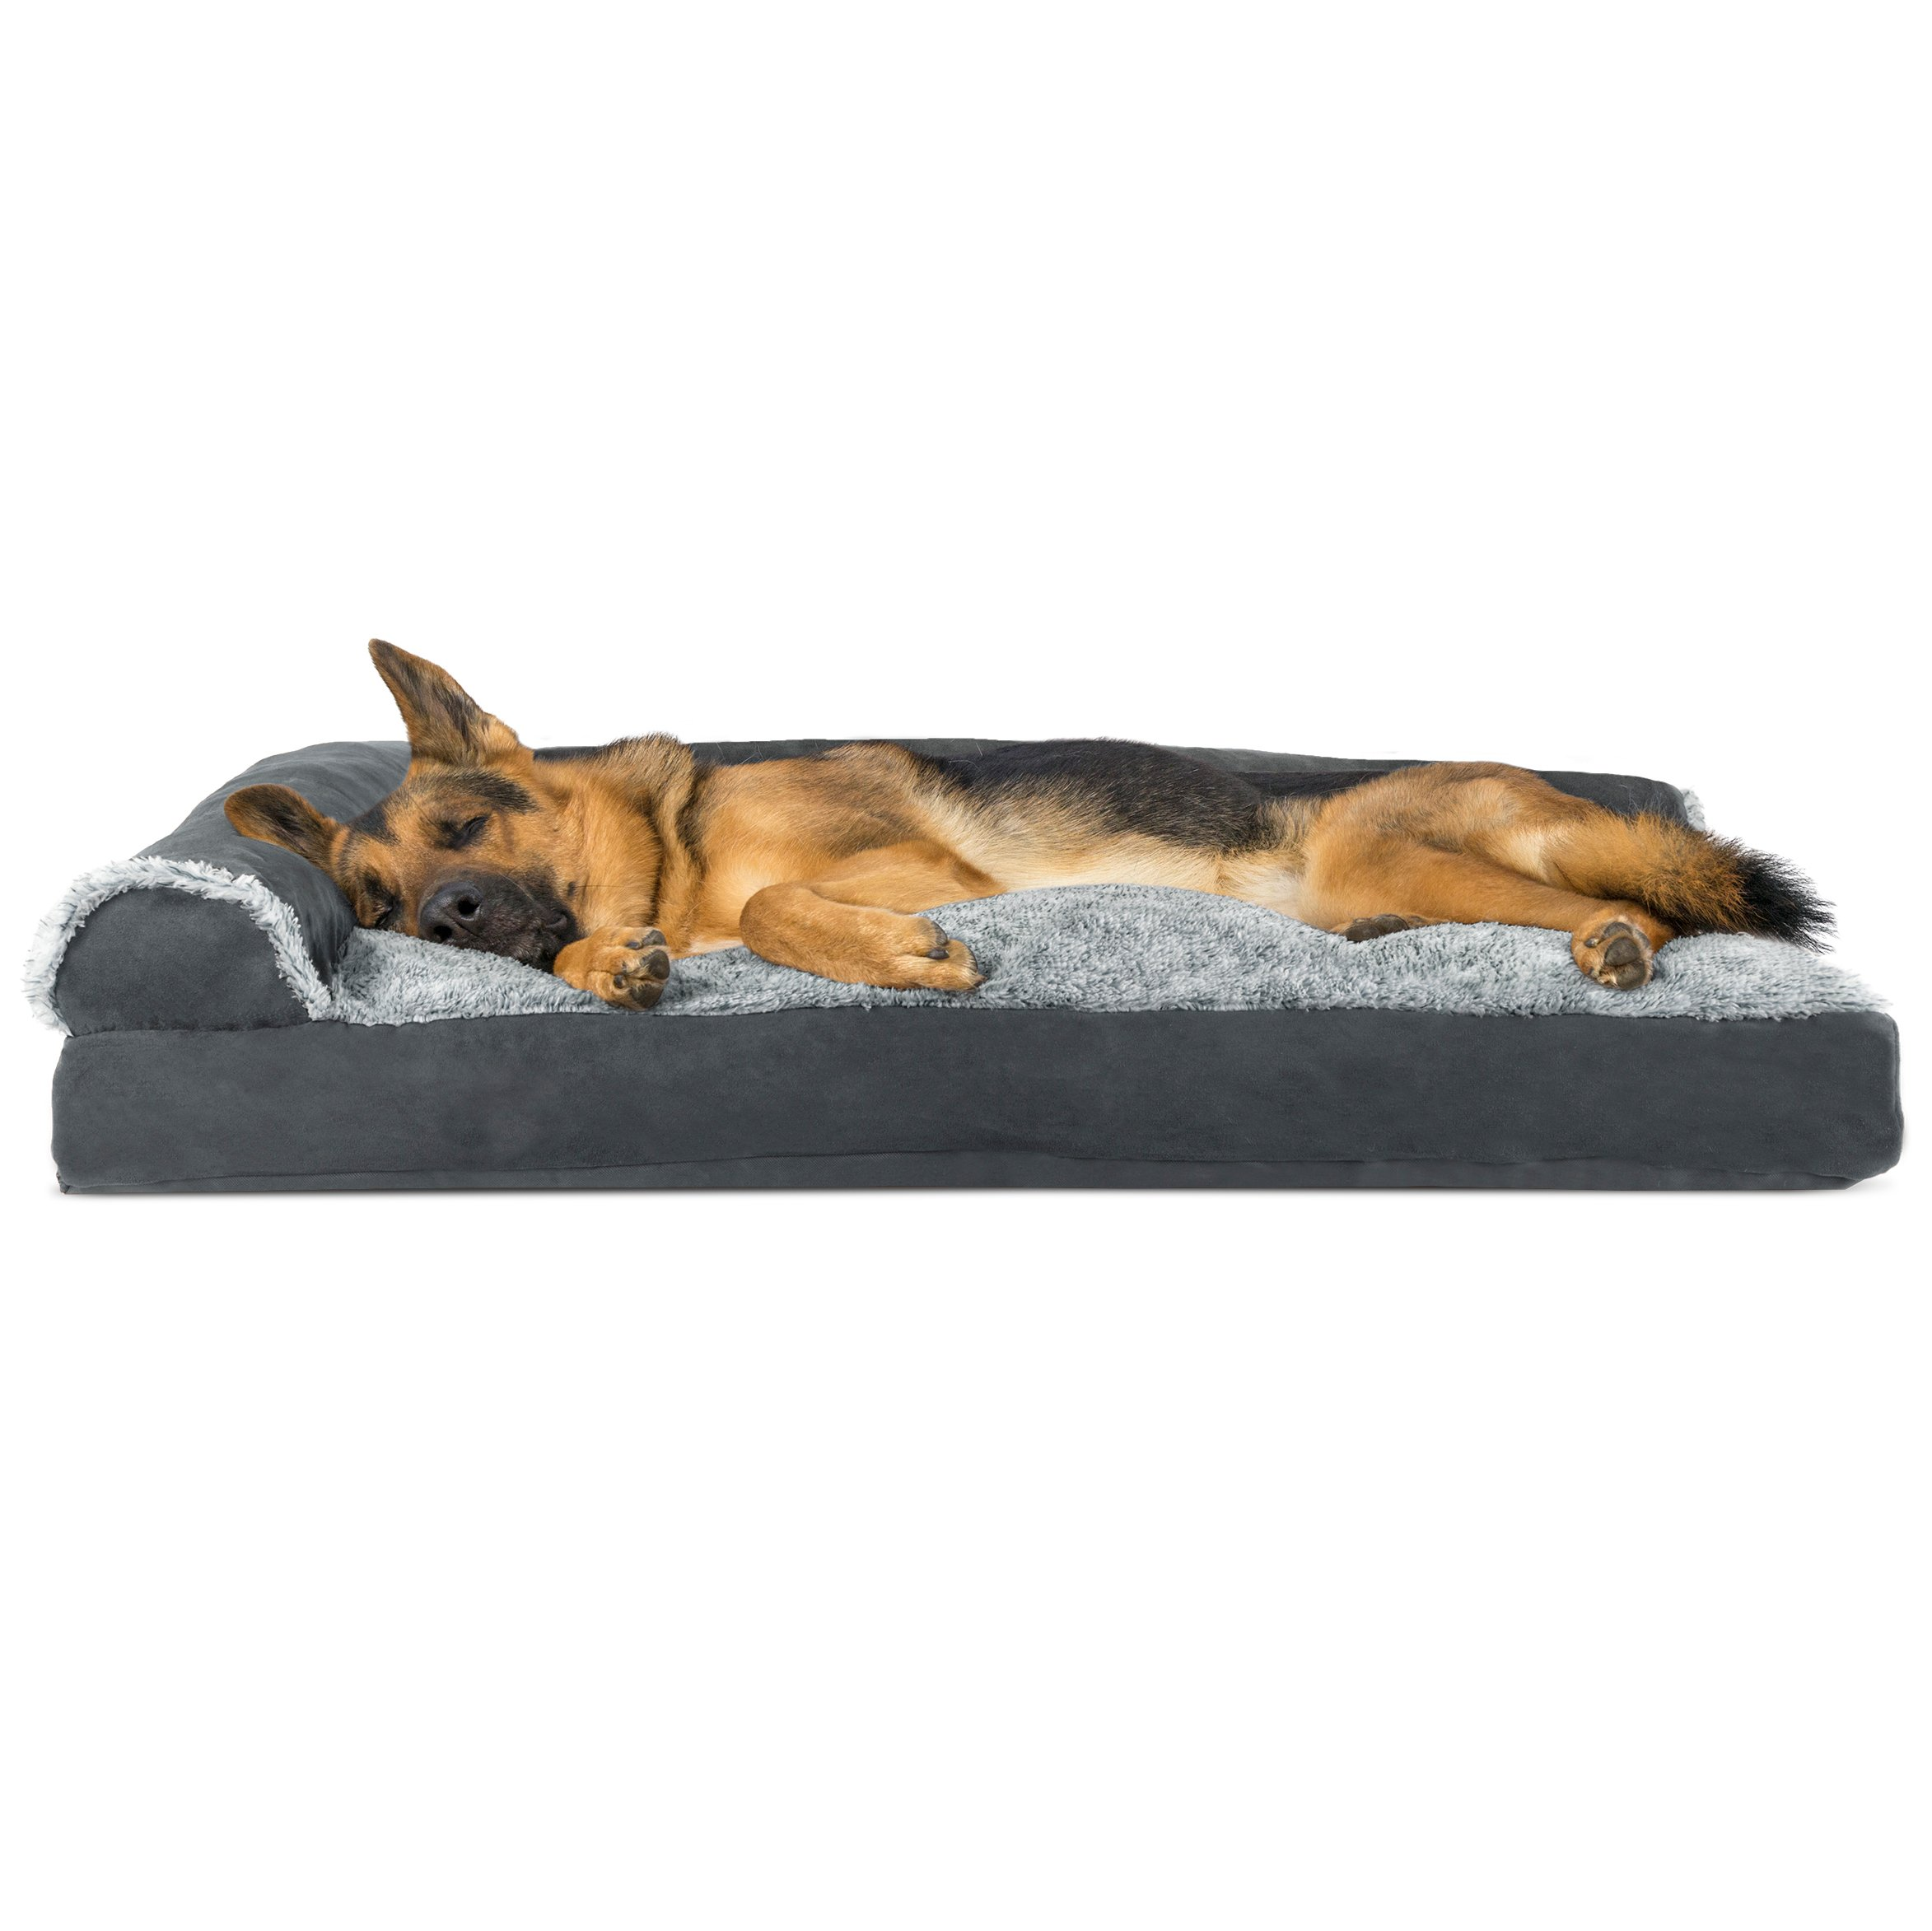 FurHaven Faux Fur & Suede Chaise Lounge Pillow Sofa-Style Pet Bed, Jumbo, Stone Gray